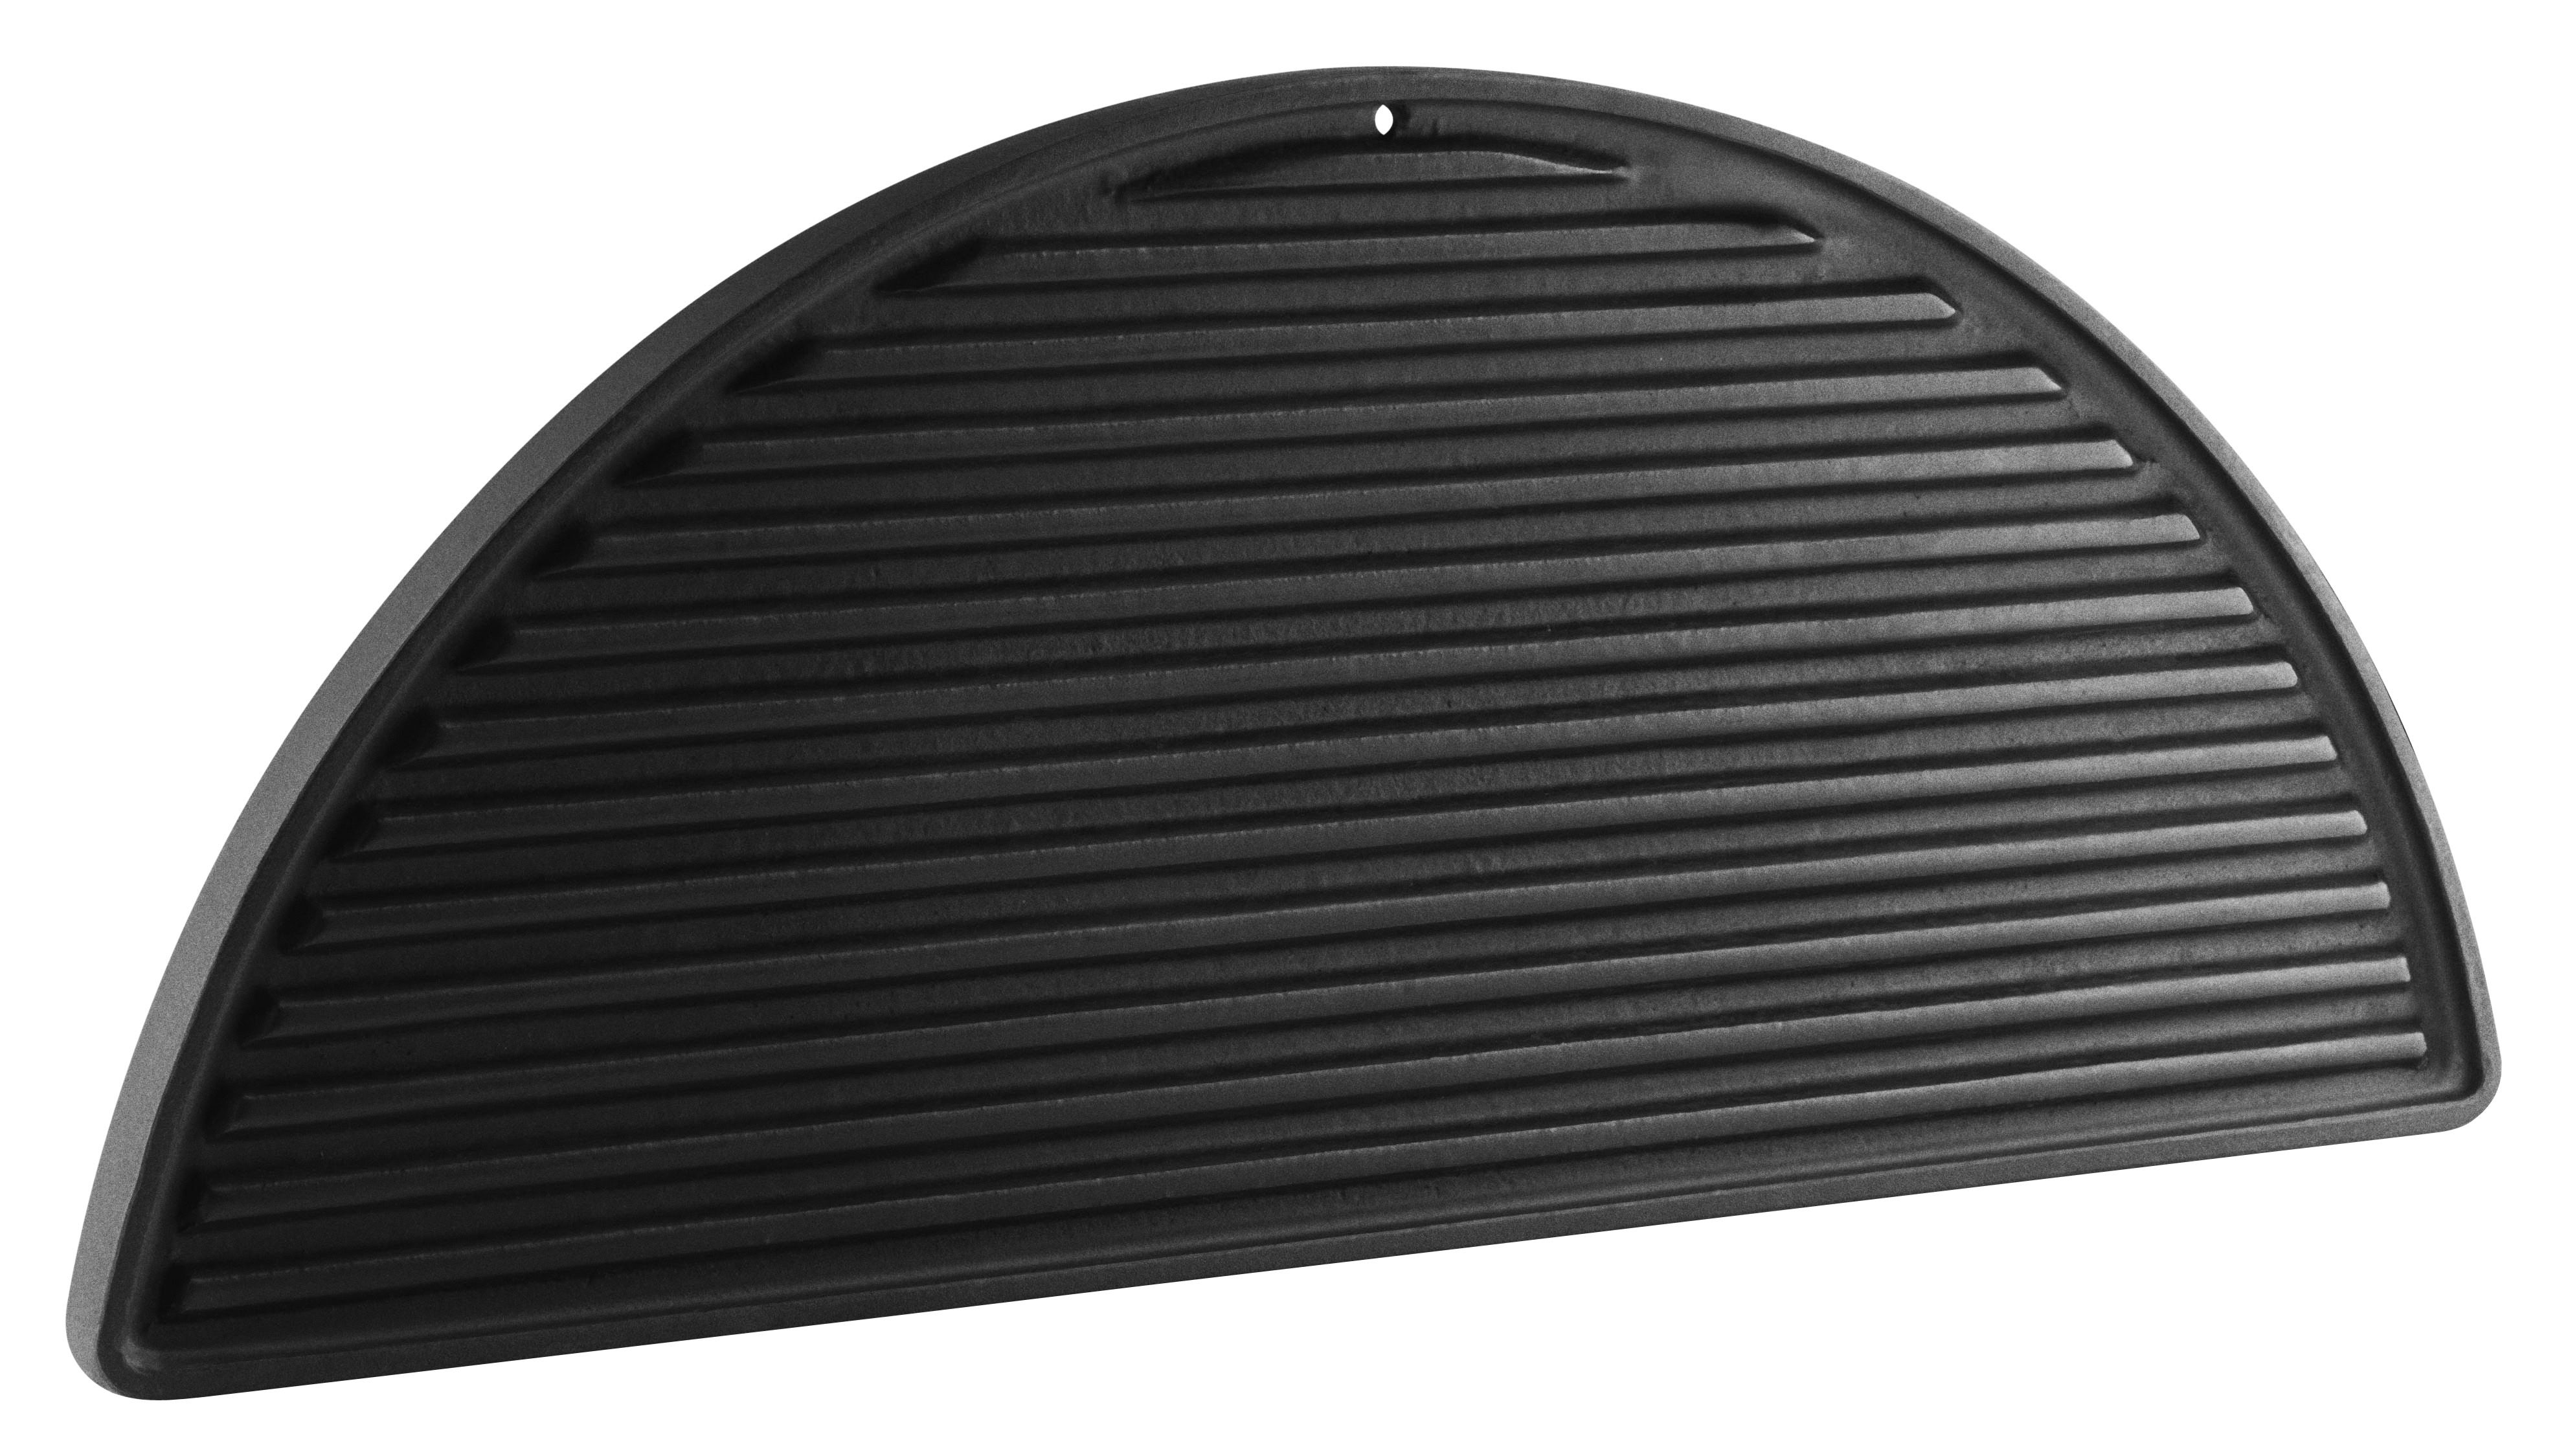 Outdoor - Barbecues & Charcoal Grills - Plancha - Cast iron - For barbecue by Eva Solo - Black - Cast enameled iron